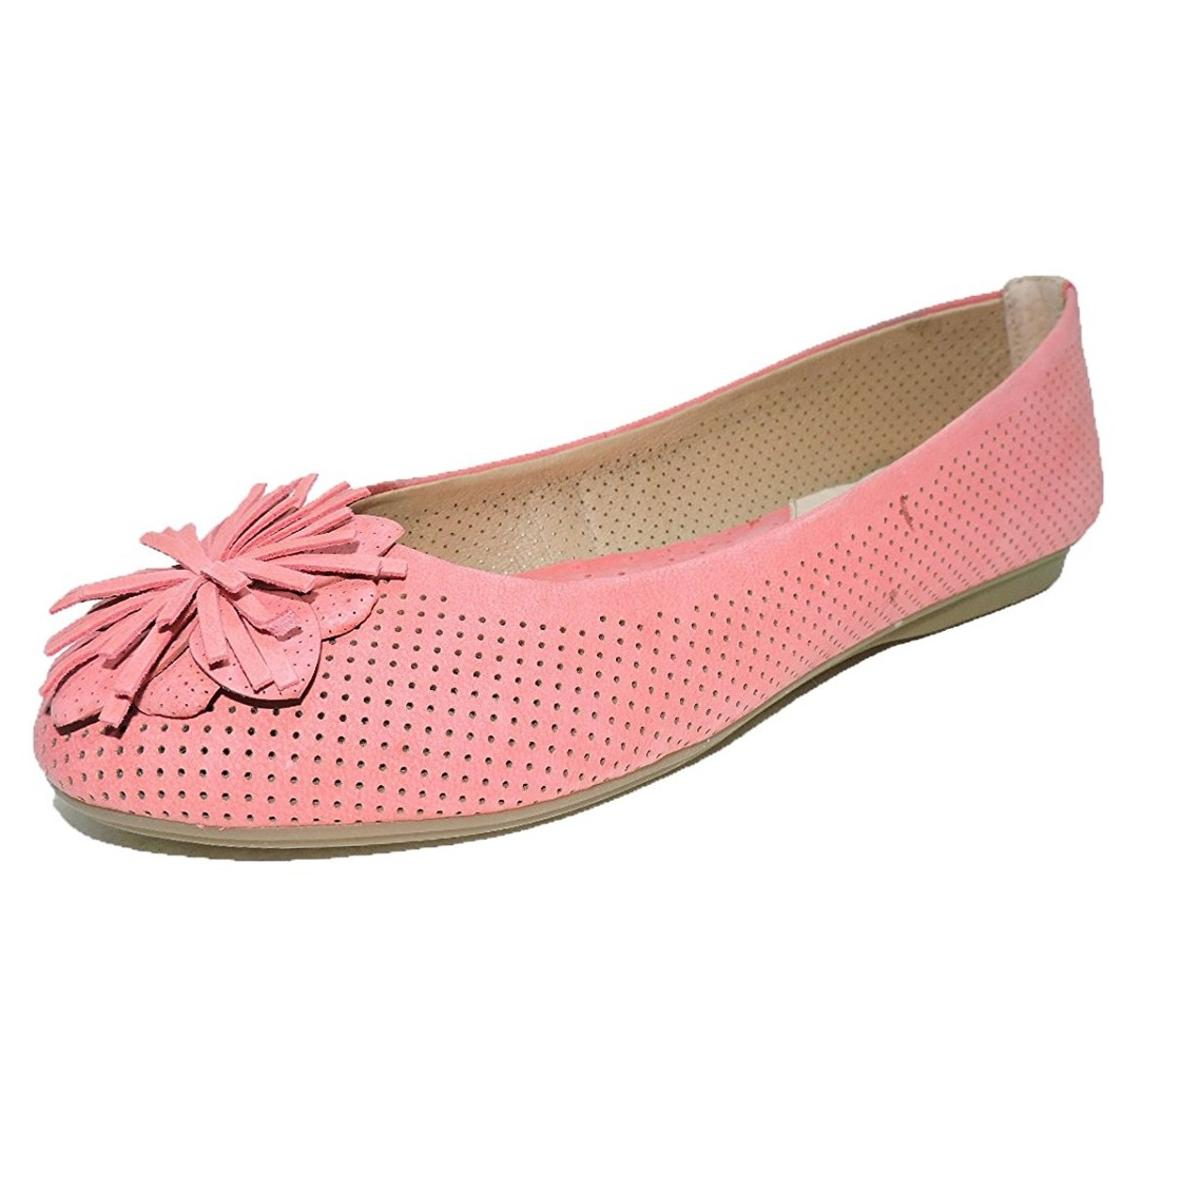 Hush Puppies Cala Atkin IIV Womens Pink Flats by Hush Puppies